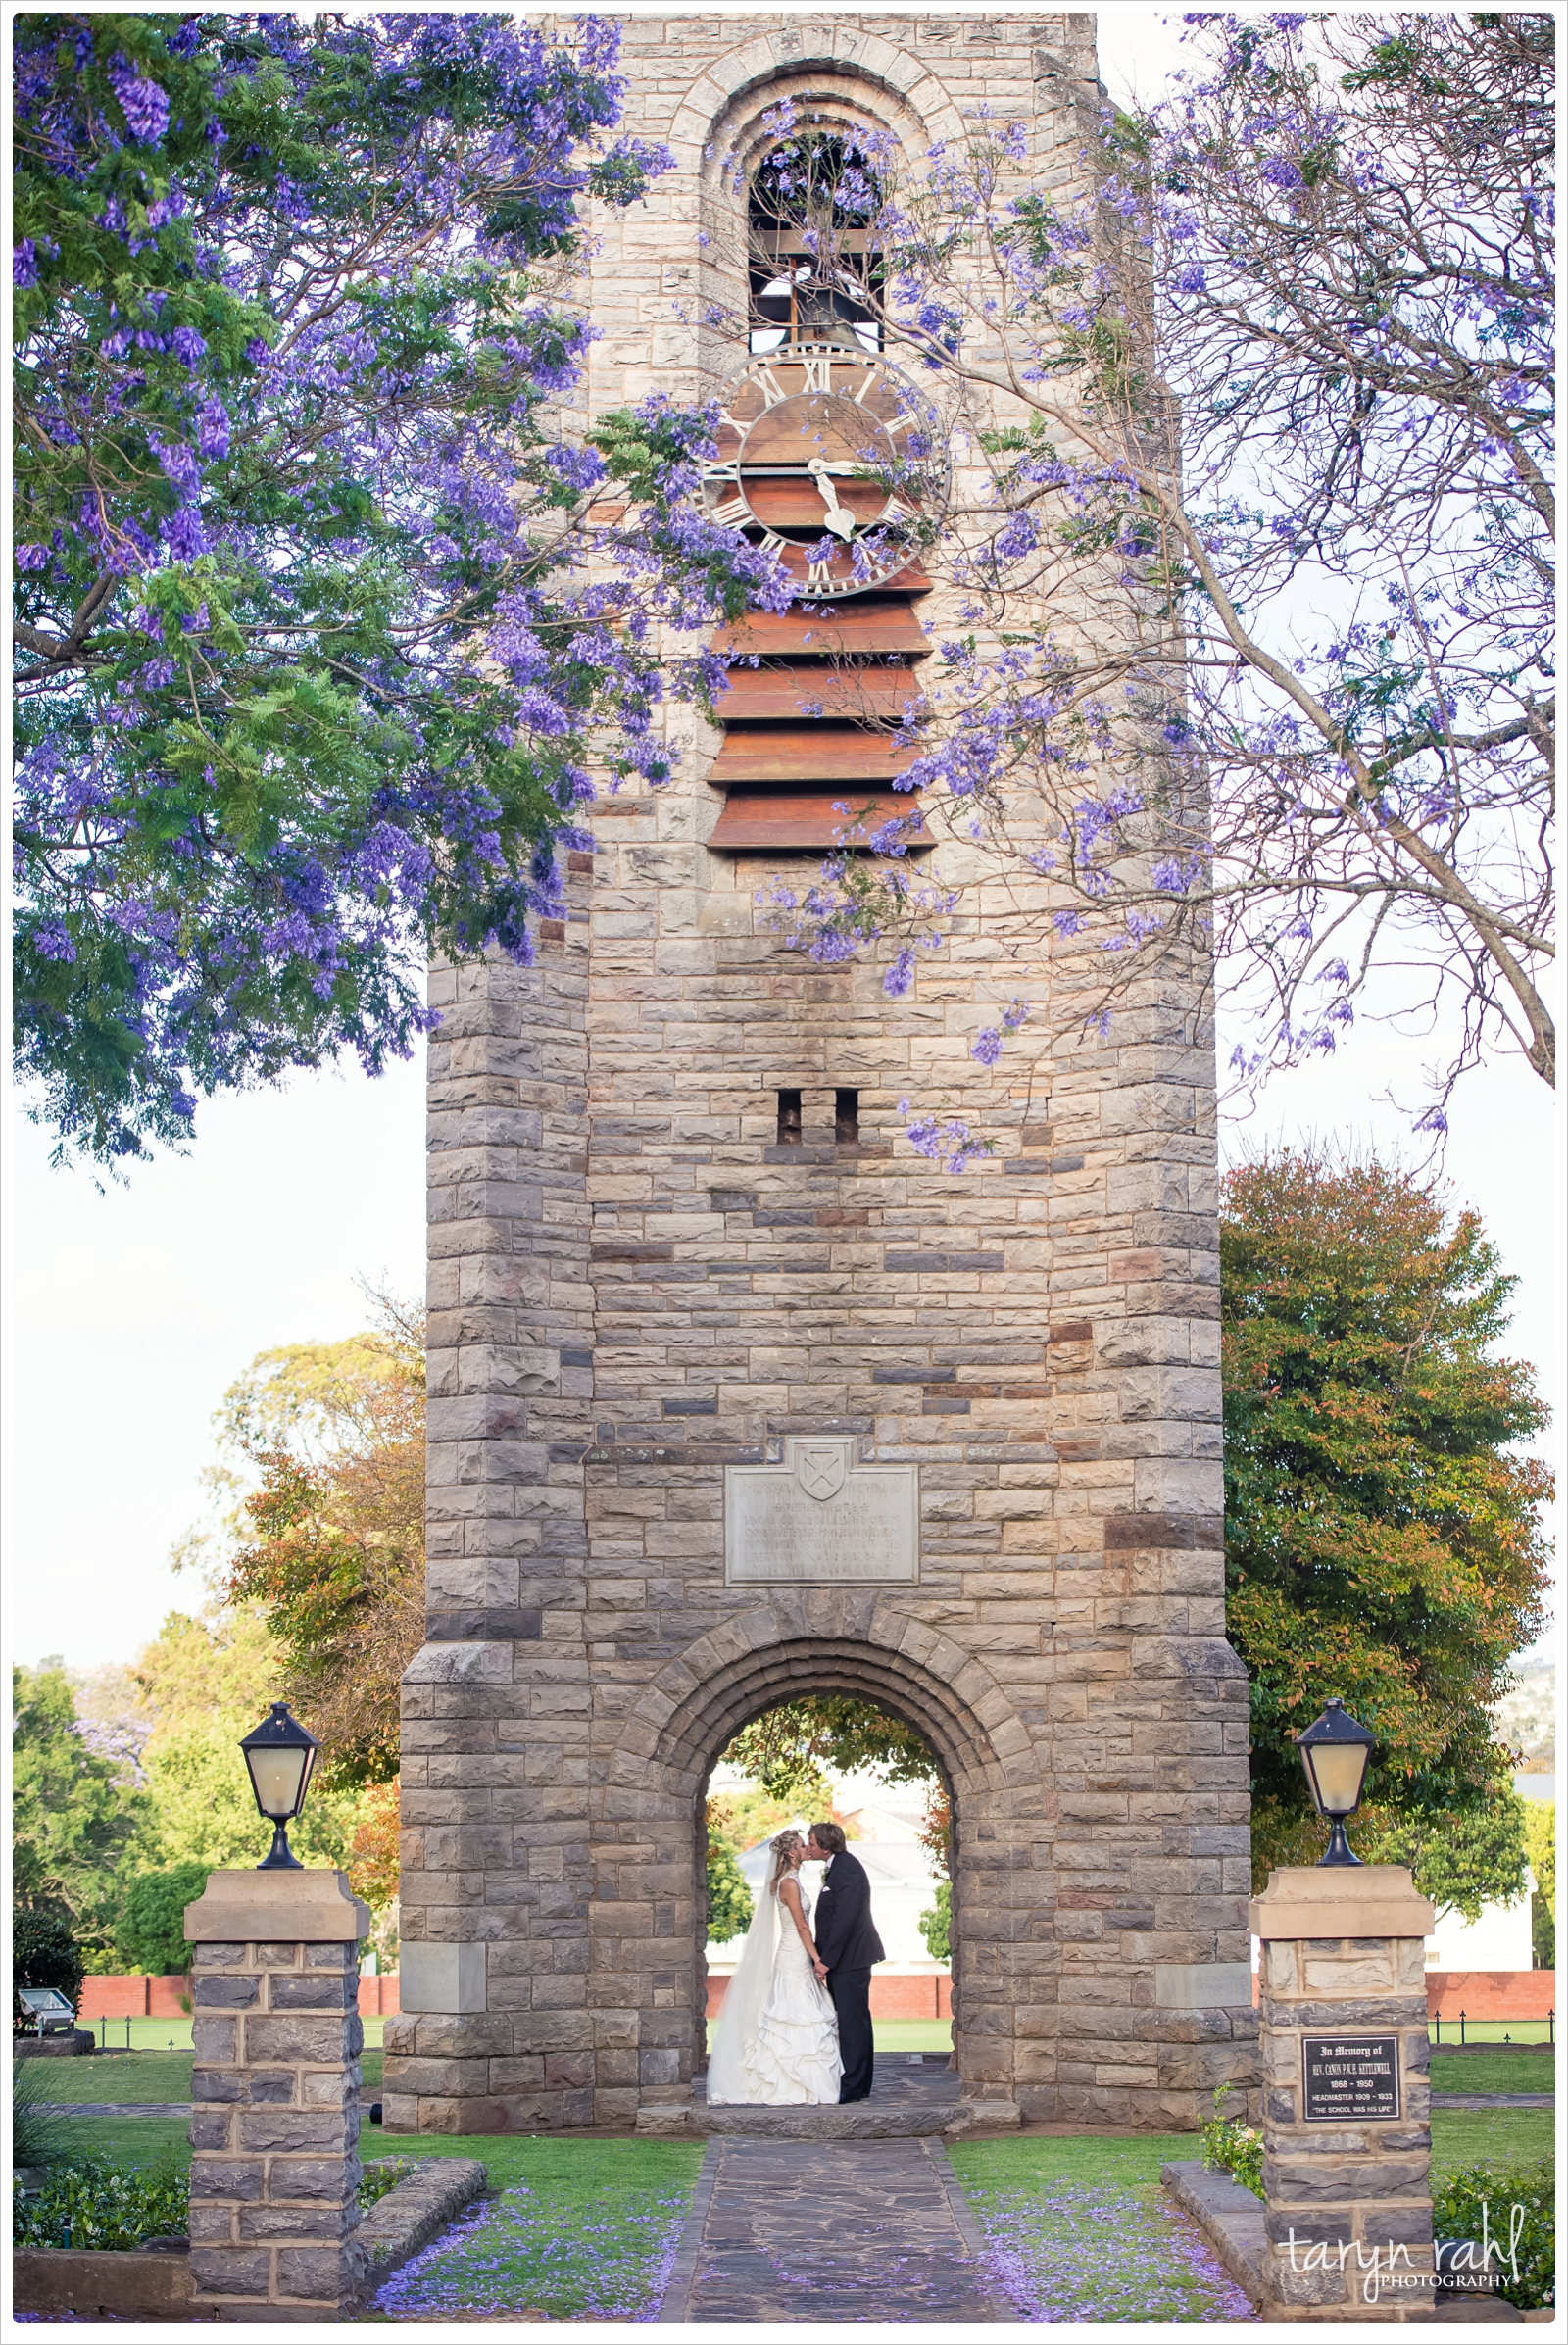 Lindi and Duifie | wedding in Grahamstown